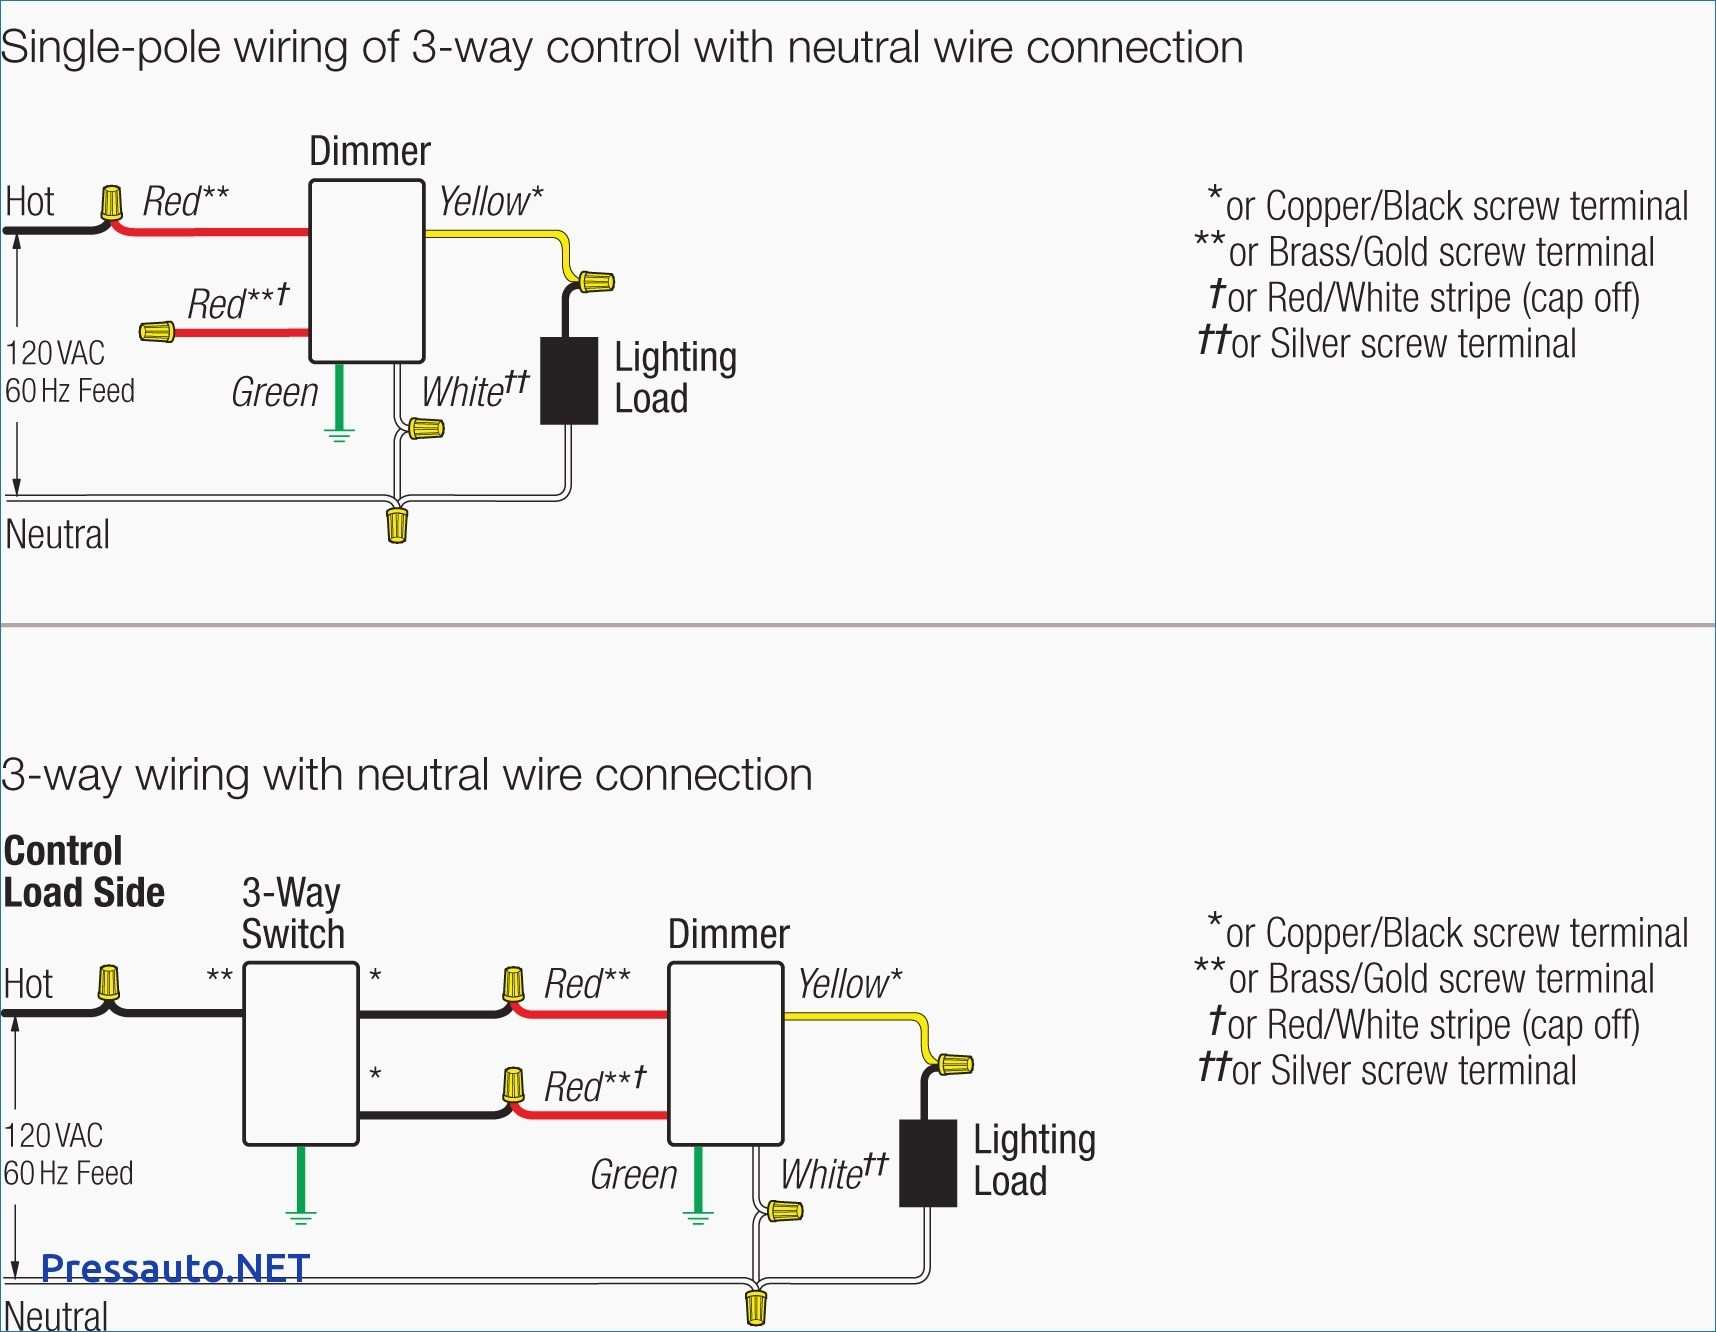 iota i 24 emergency ballast wiring diagram Download-Iota I 24 Emergency Ballast Wiring Diagram Iota I 24 Emergency Ballast Wiring Diagram Wiring 17-b